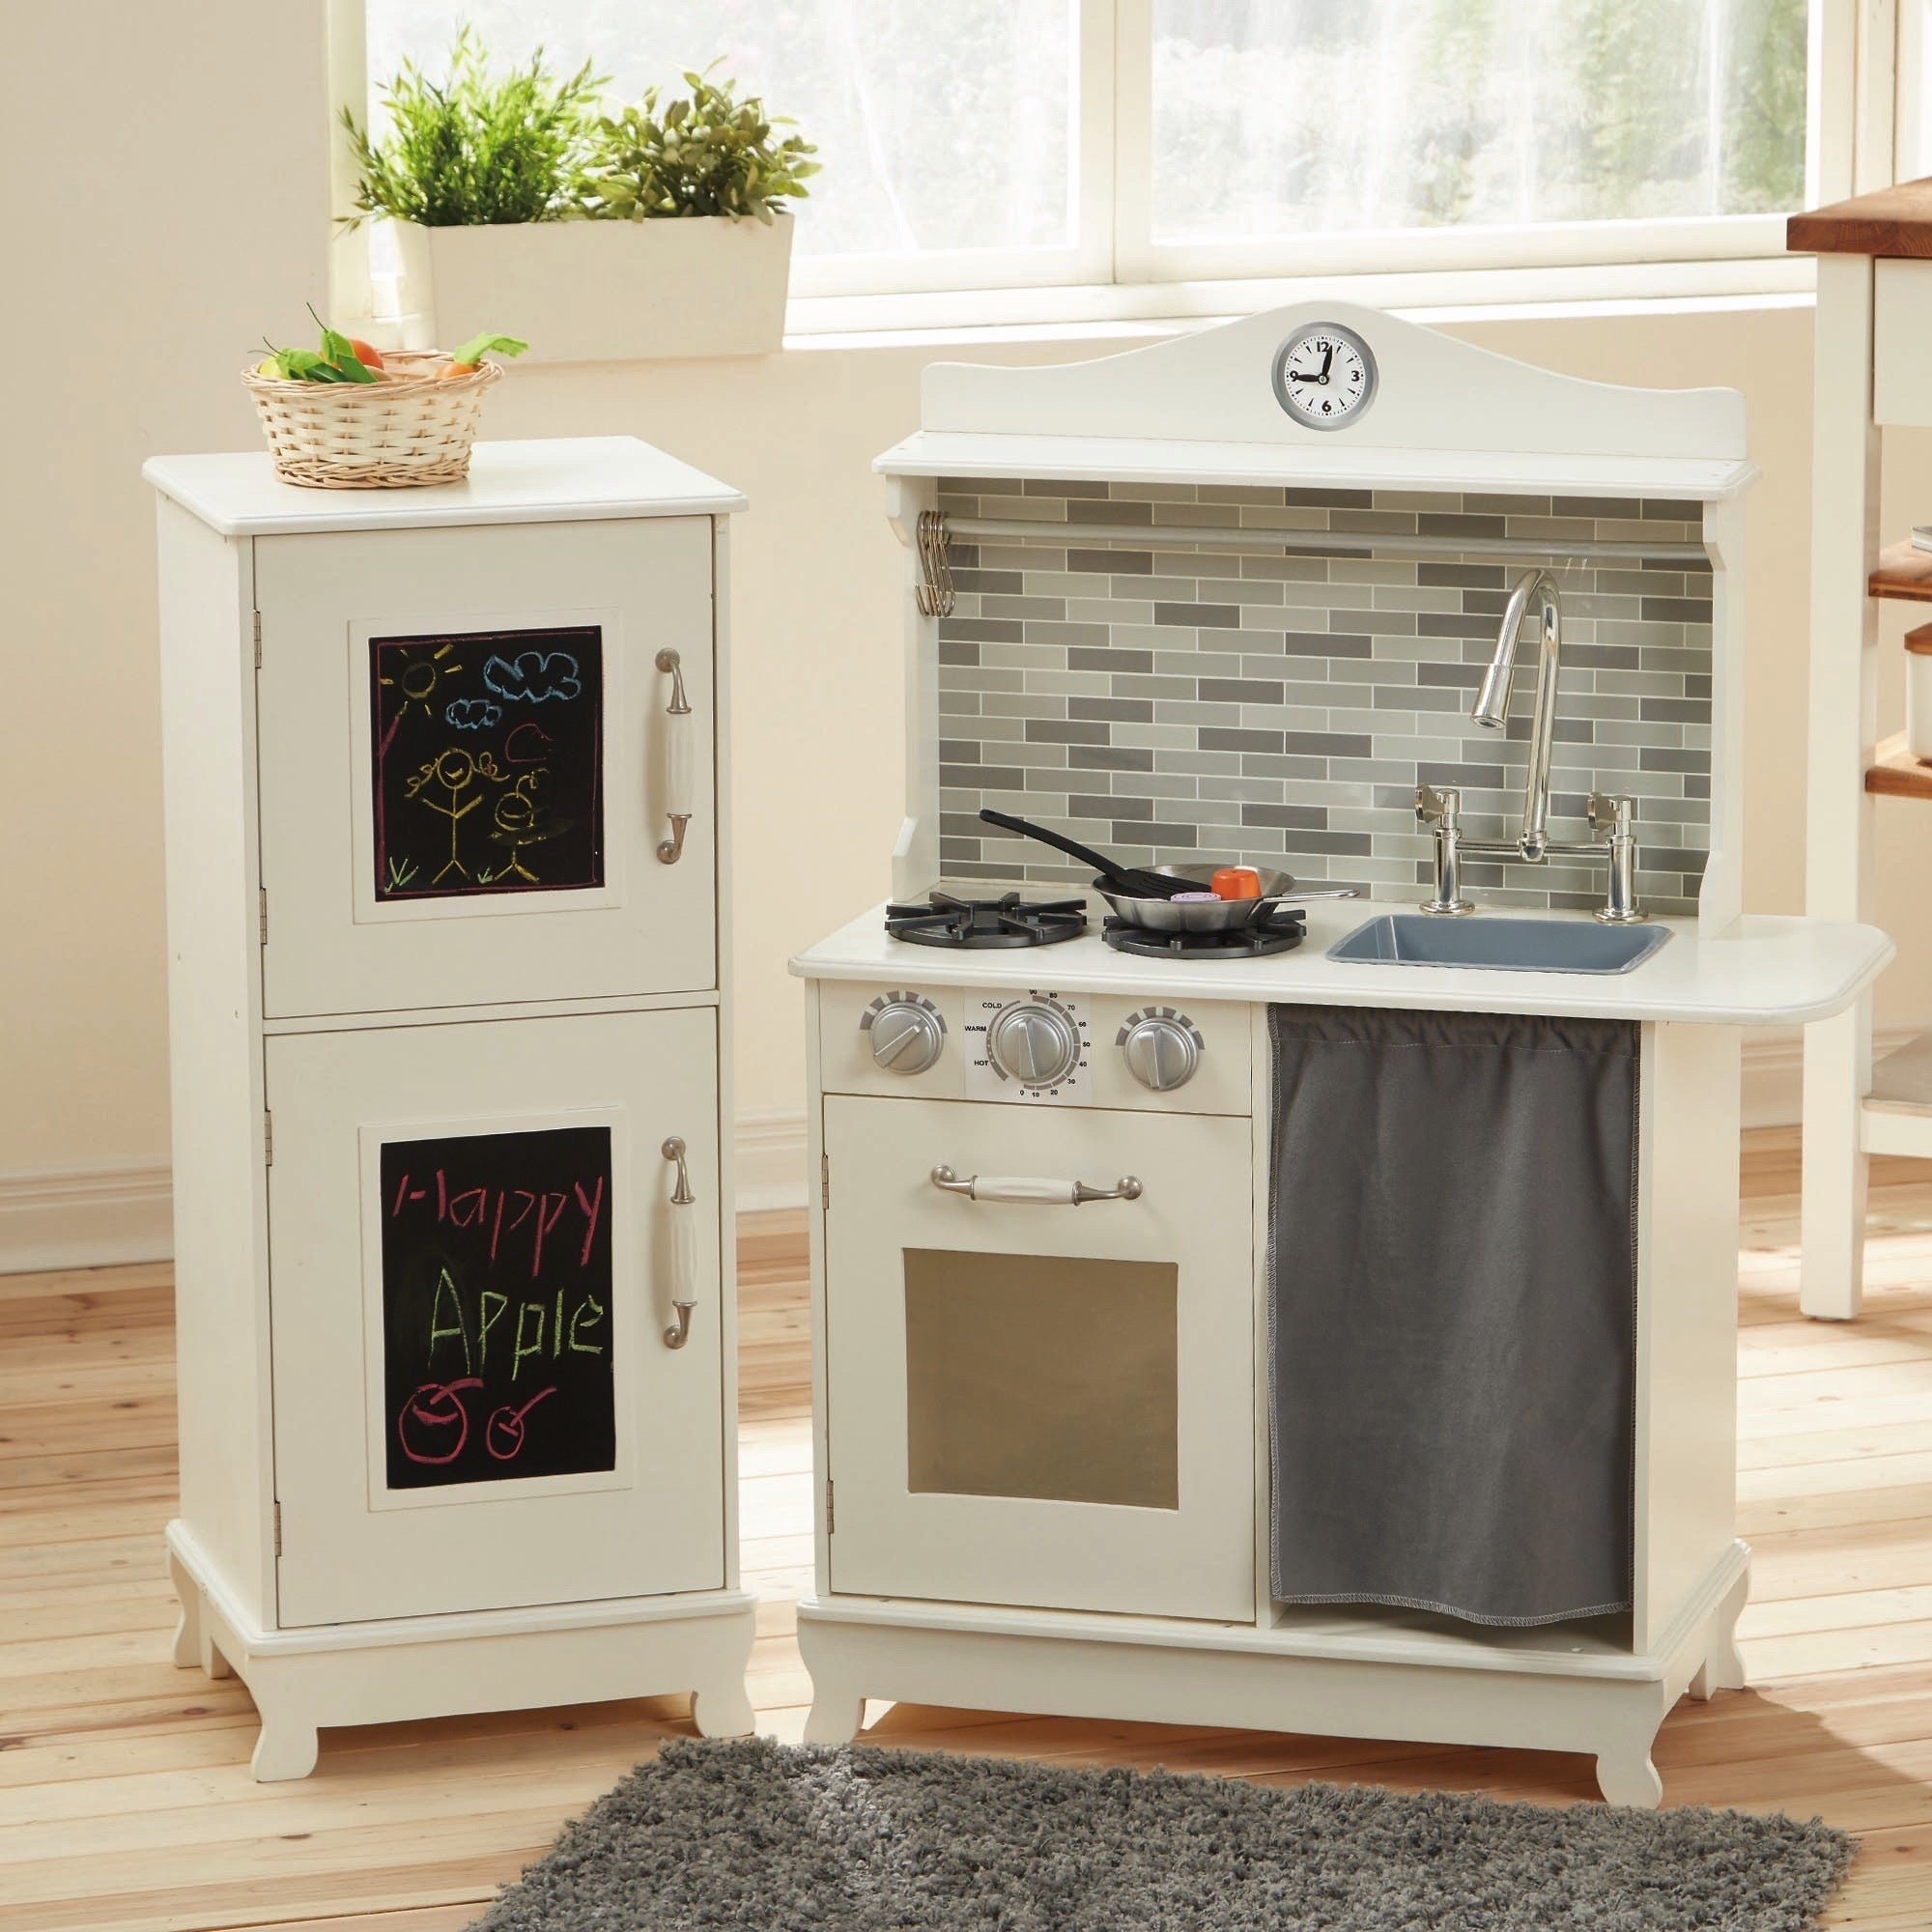 Shop teamson kids sunday brunch white wooden play kitchen on sale free shipping today overstock com 12179166